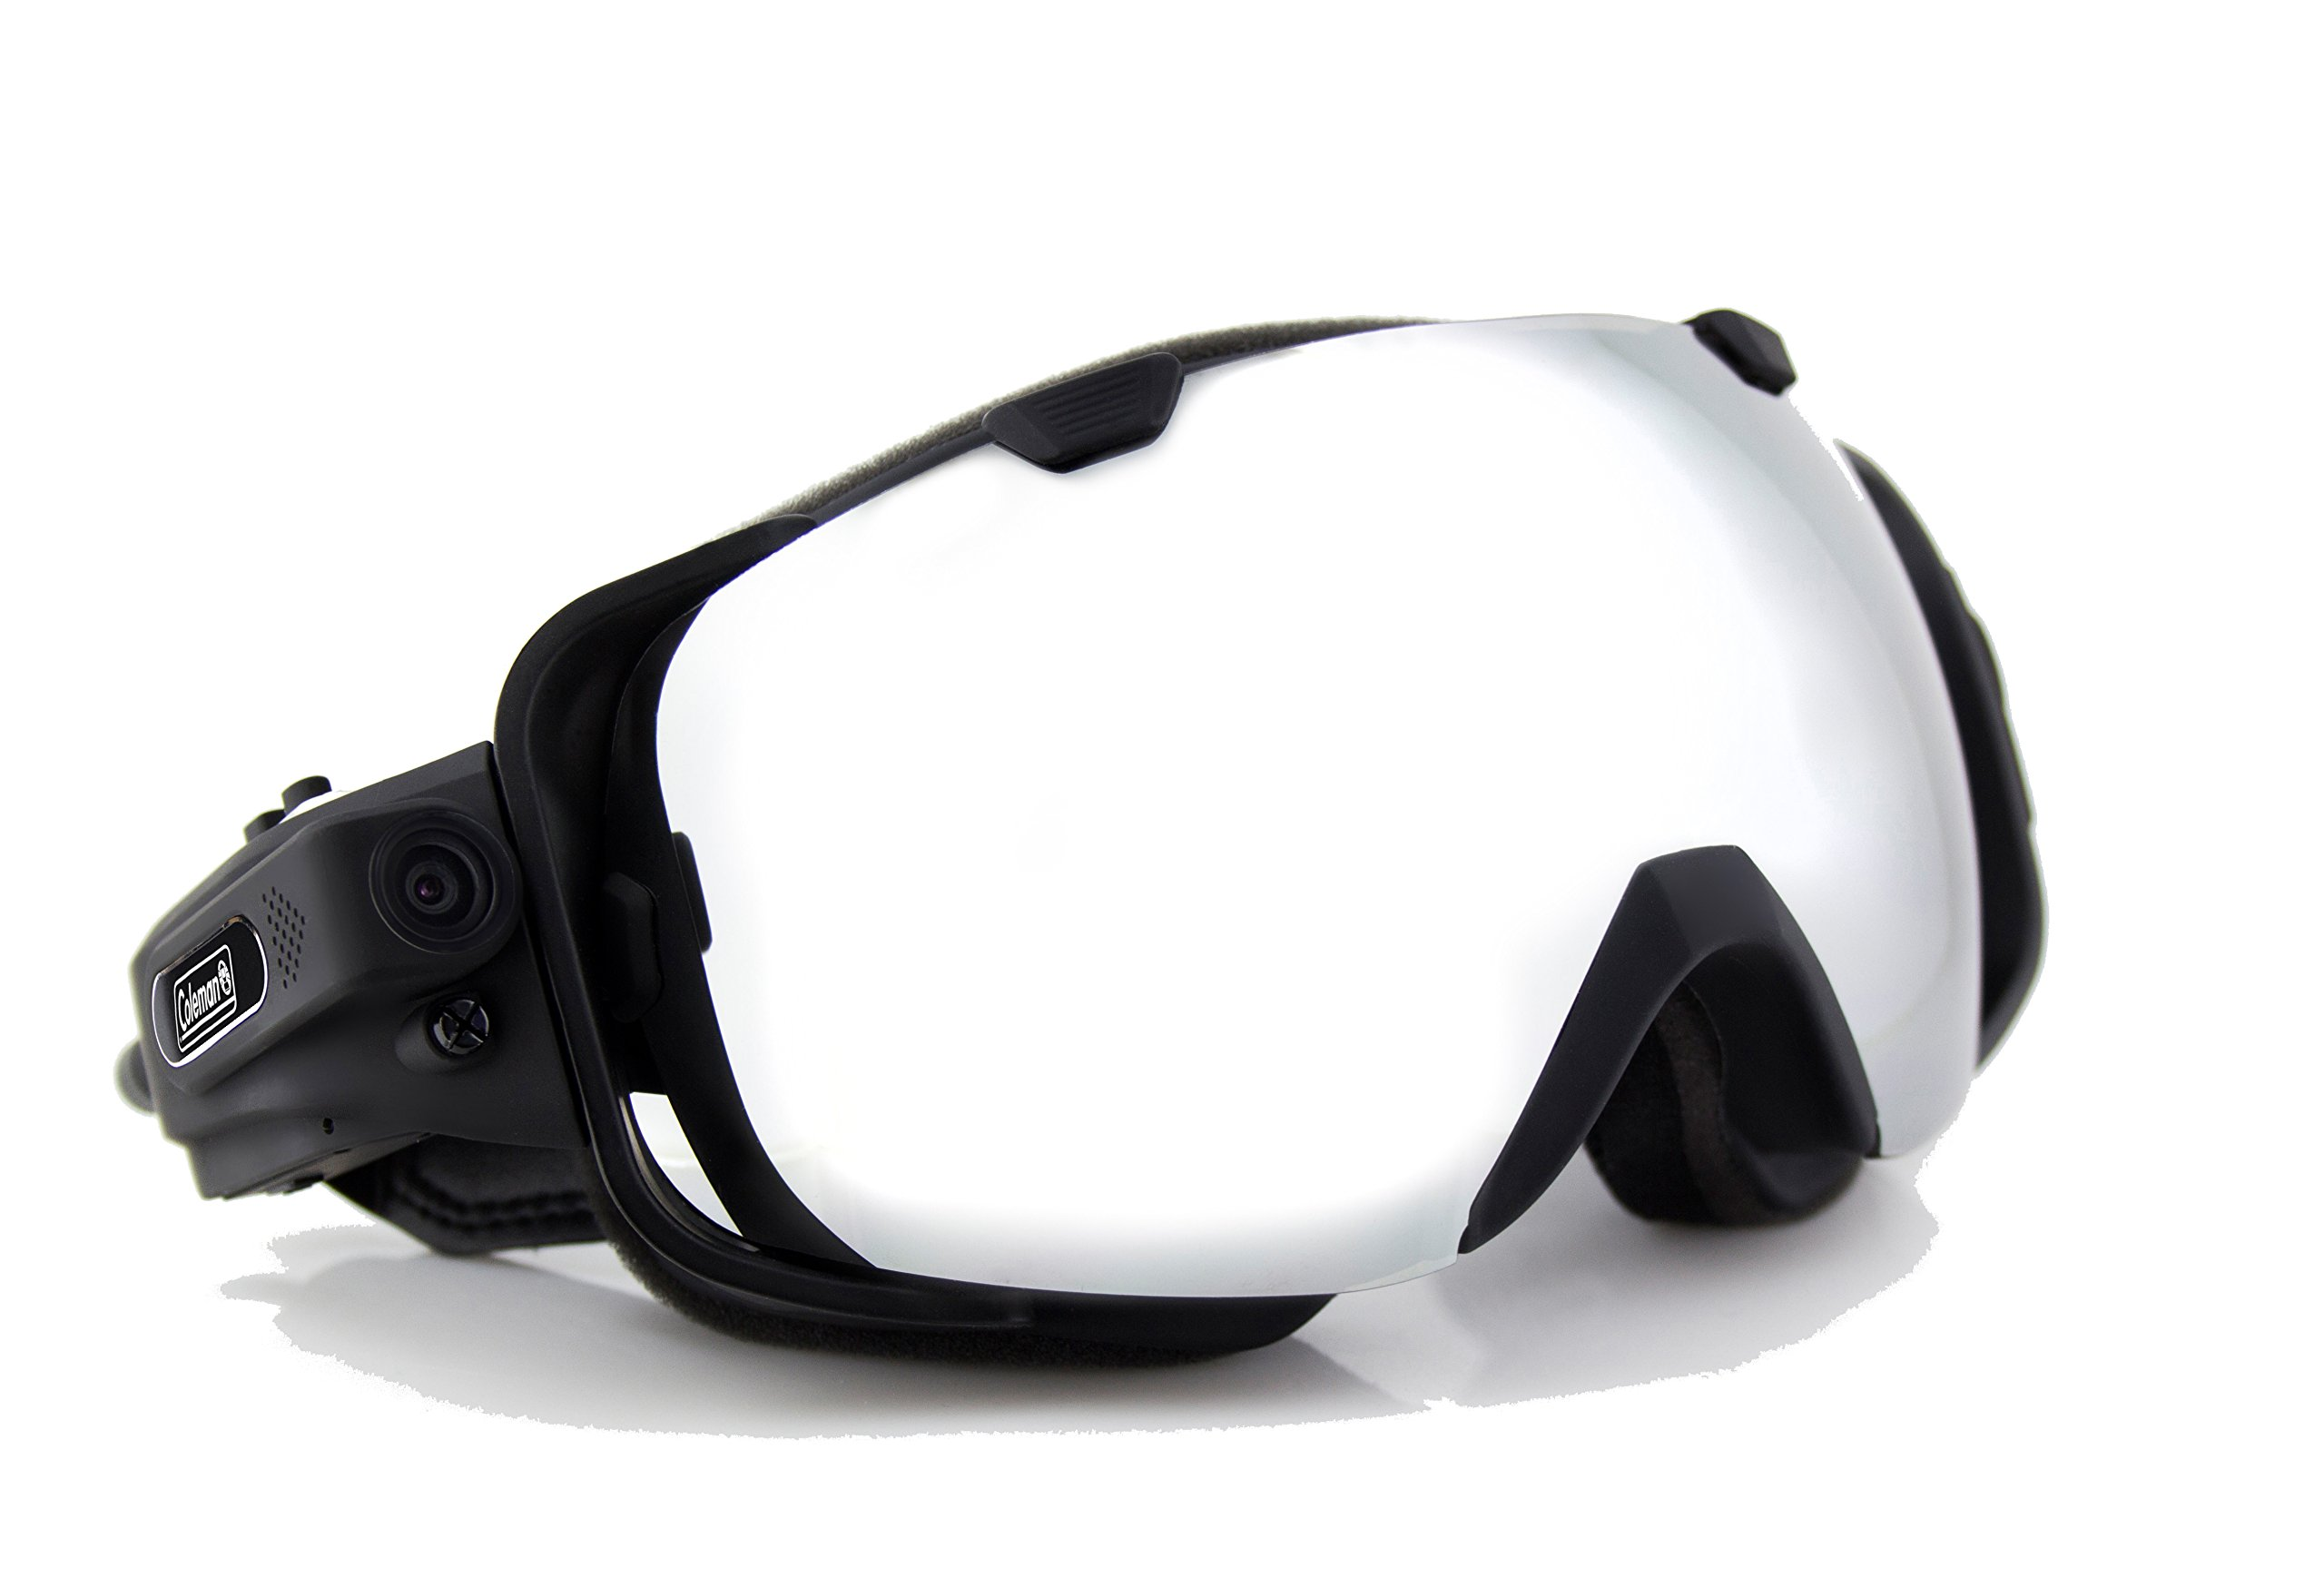 Coleman G9HD-SKI VisionHD 1080p Full HD Ski Goggles with Built-In Wide Angle Video Camera (Black) by Coleman